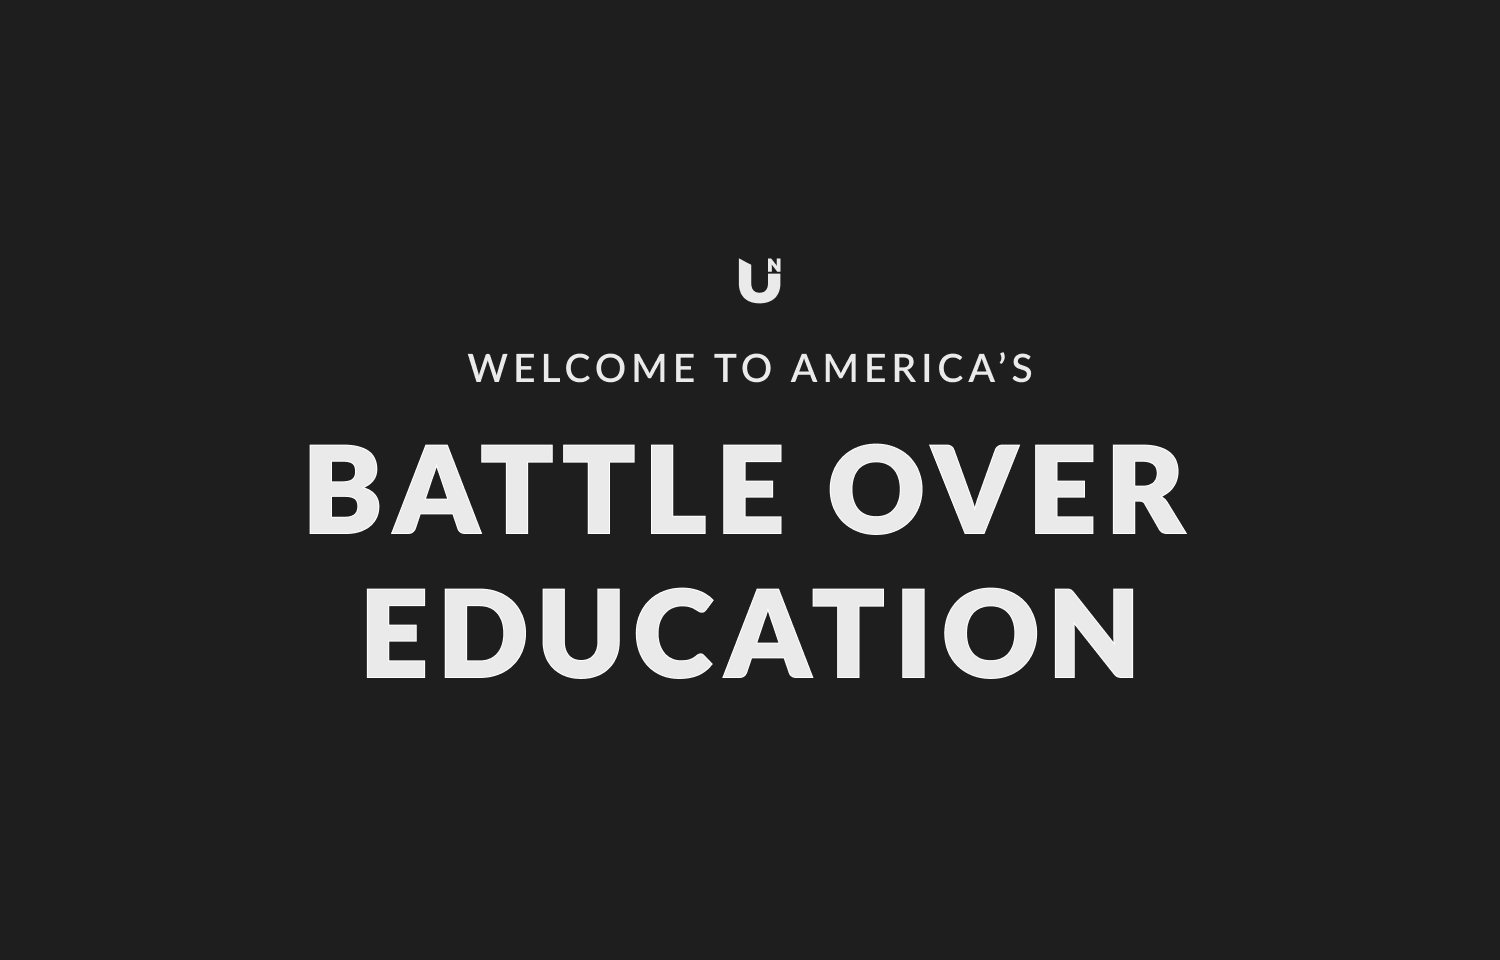 The Battle Over American Education